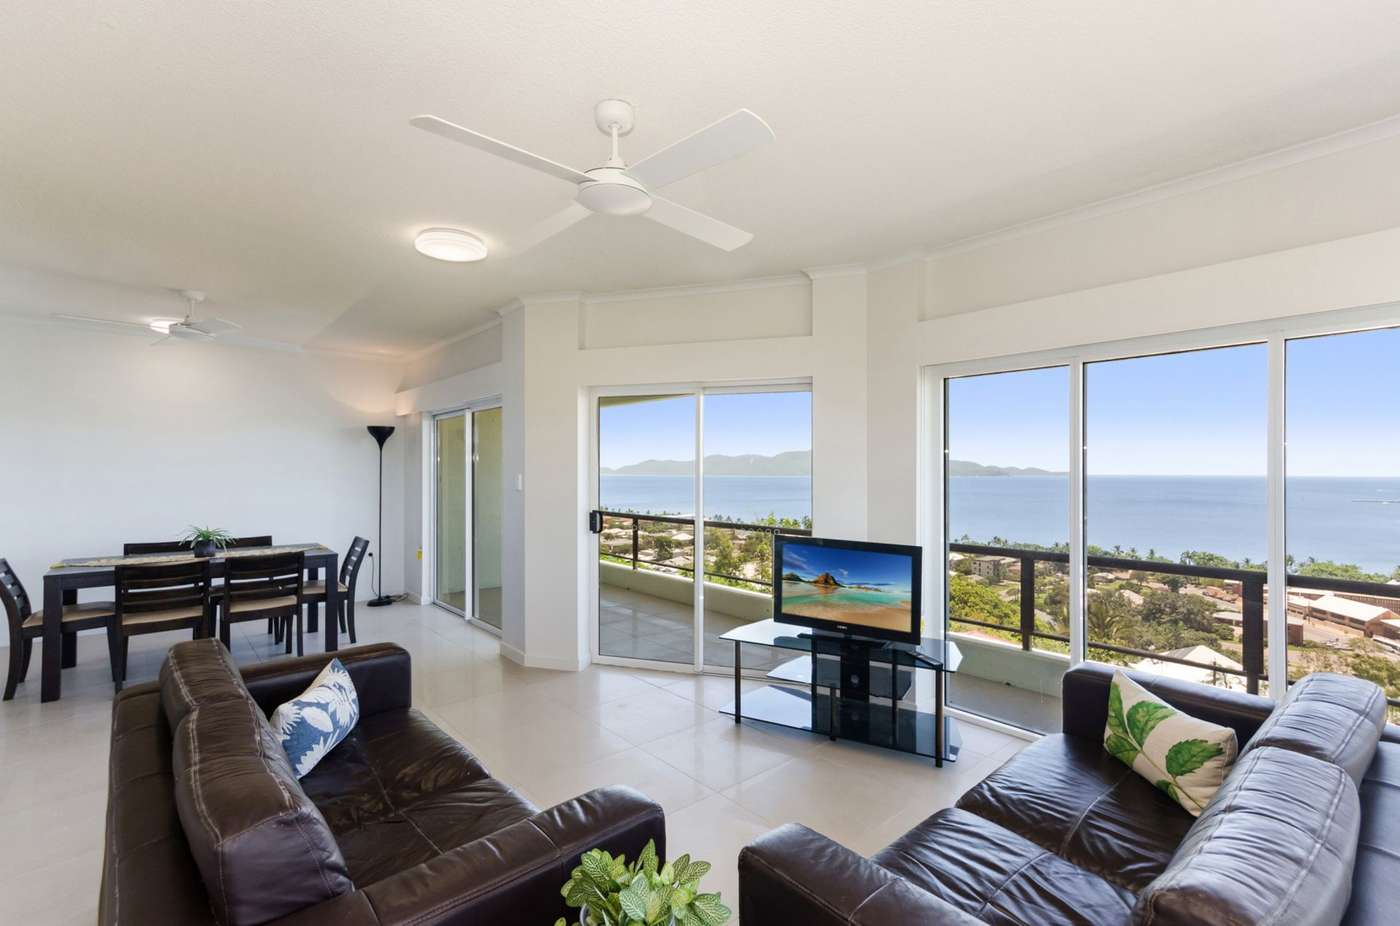 Main view of Homely apartment listing, 33/7 Hale Street, North Ward, QLD 4810